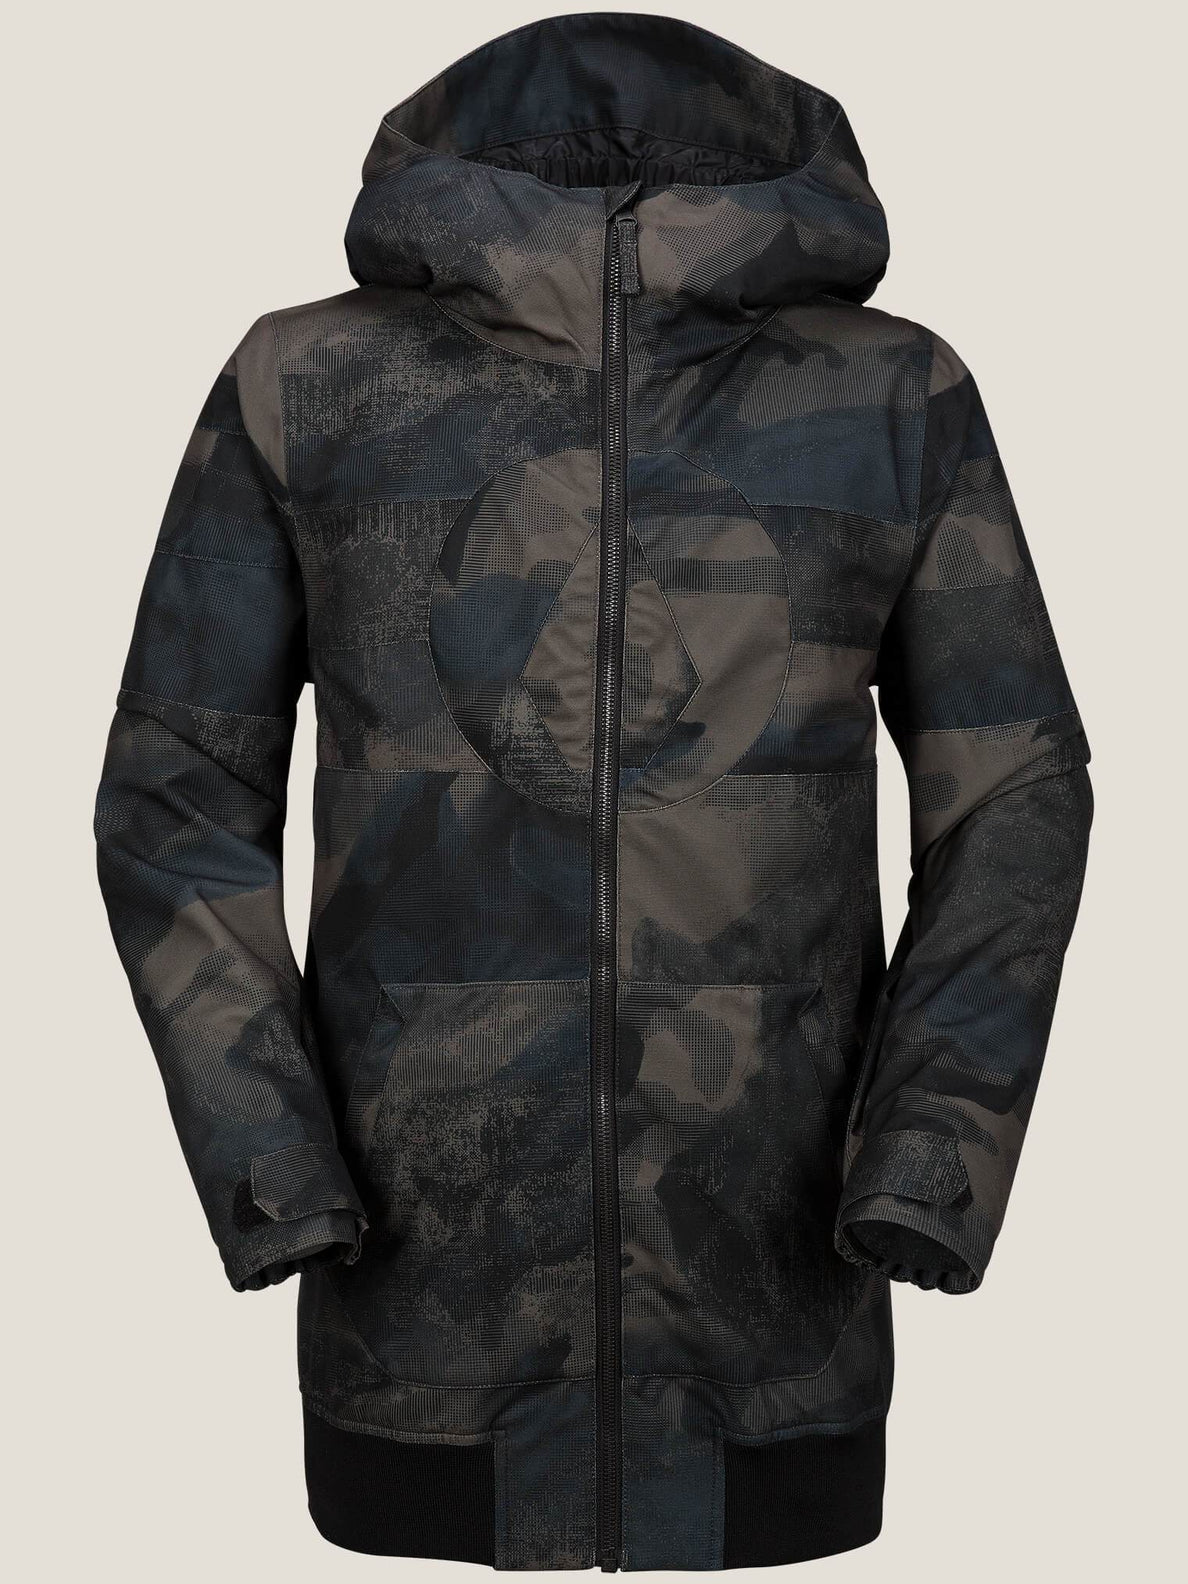 West Jacket In Camouflage, Front View